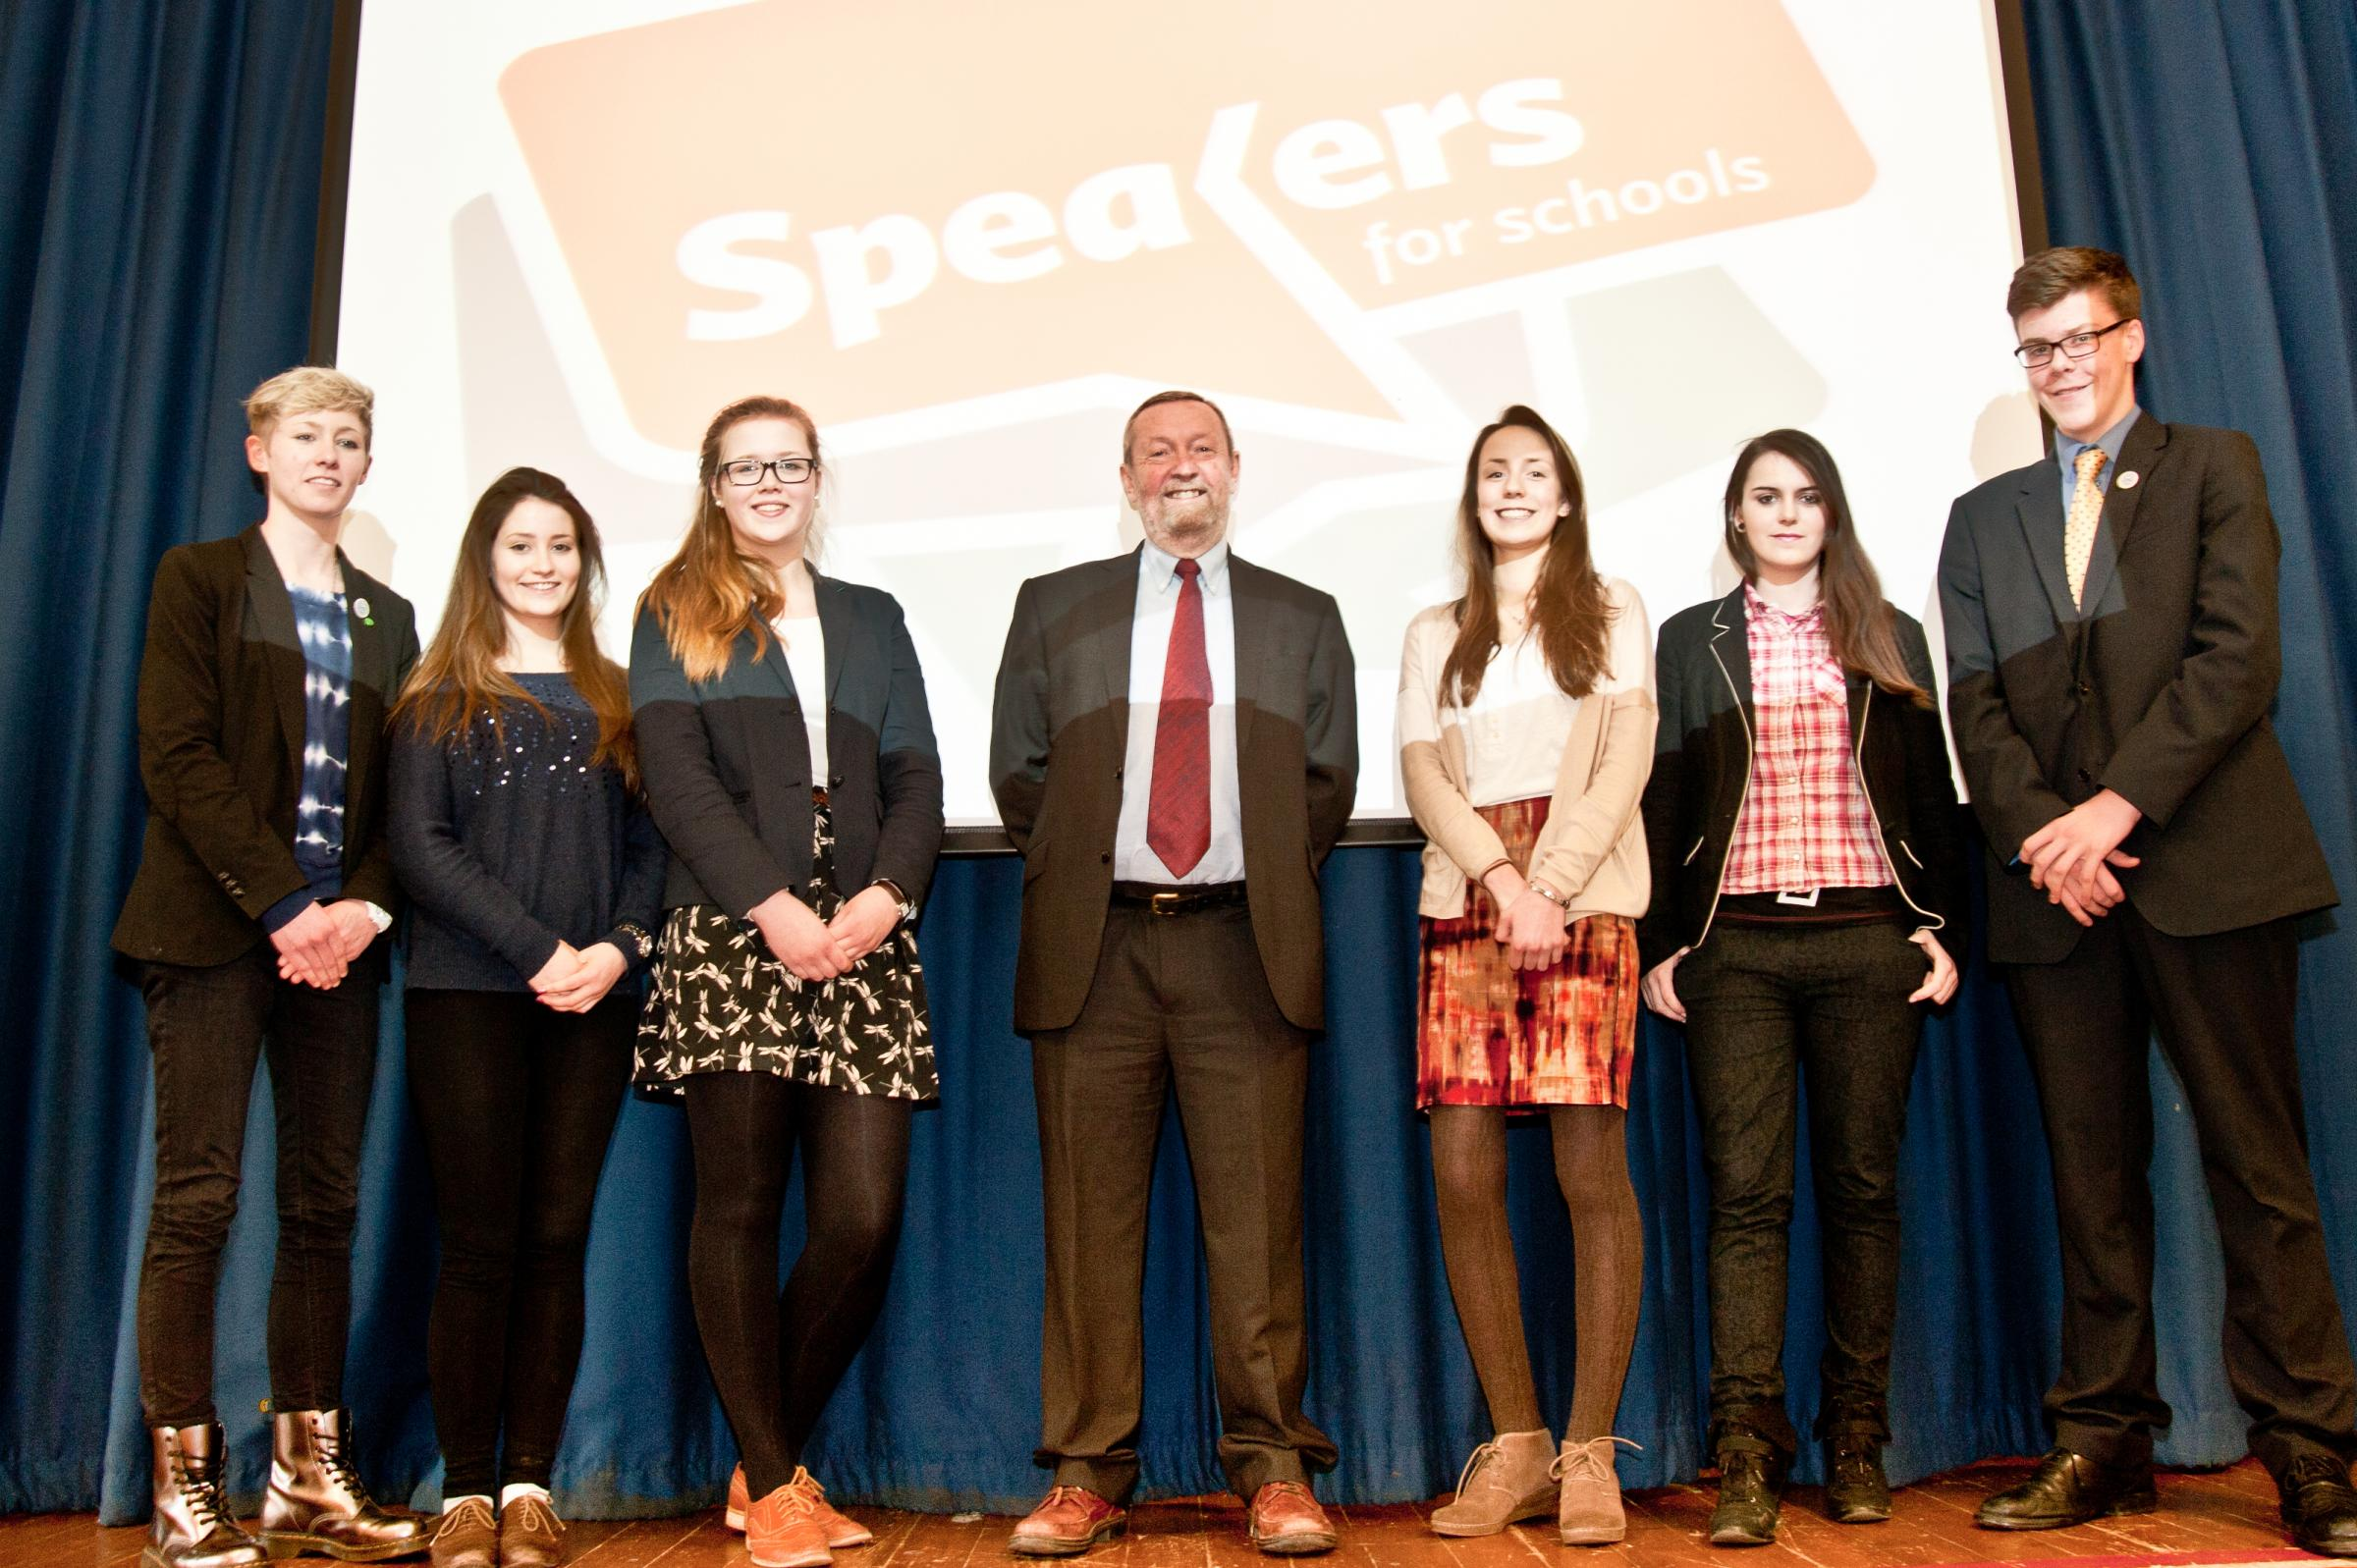 Sir John Beddington (centre) with students from Chipping Campden School l-r Sophie Ward, Emma Lawrenson, Molly Clark, Elise Sellars, Kelly Gardner and Ed Sandars